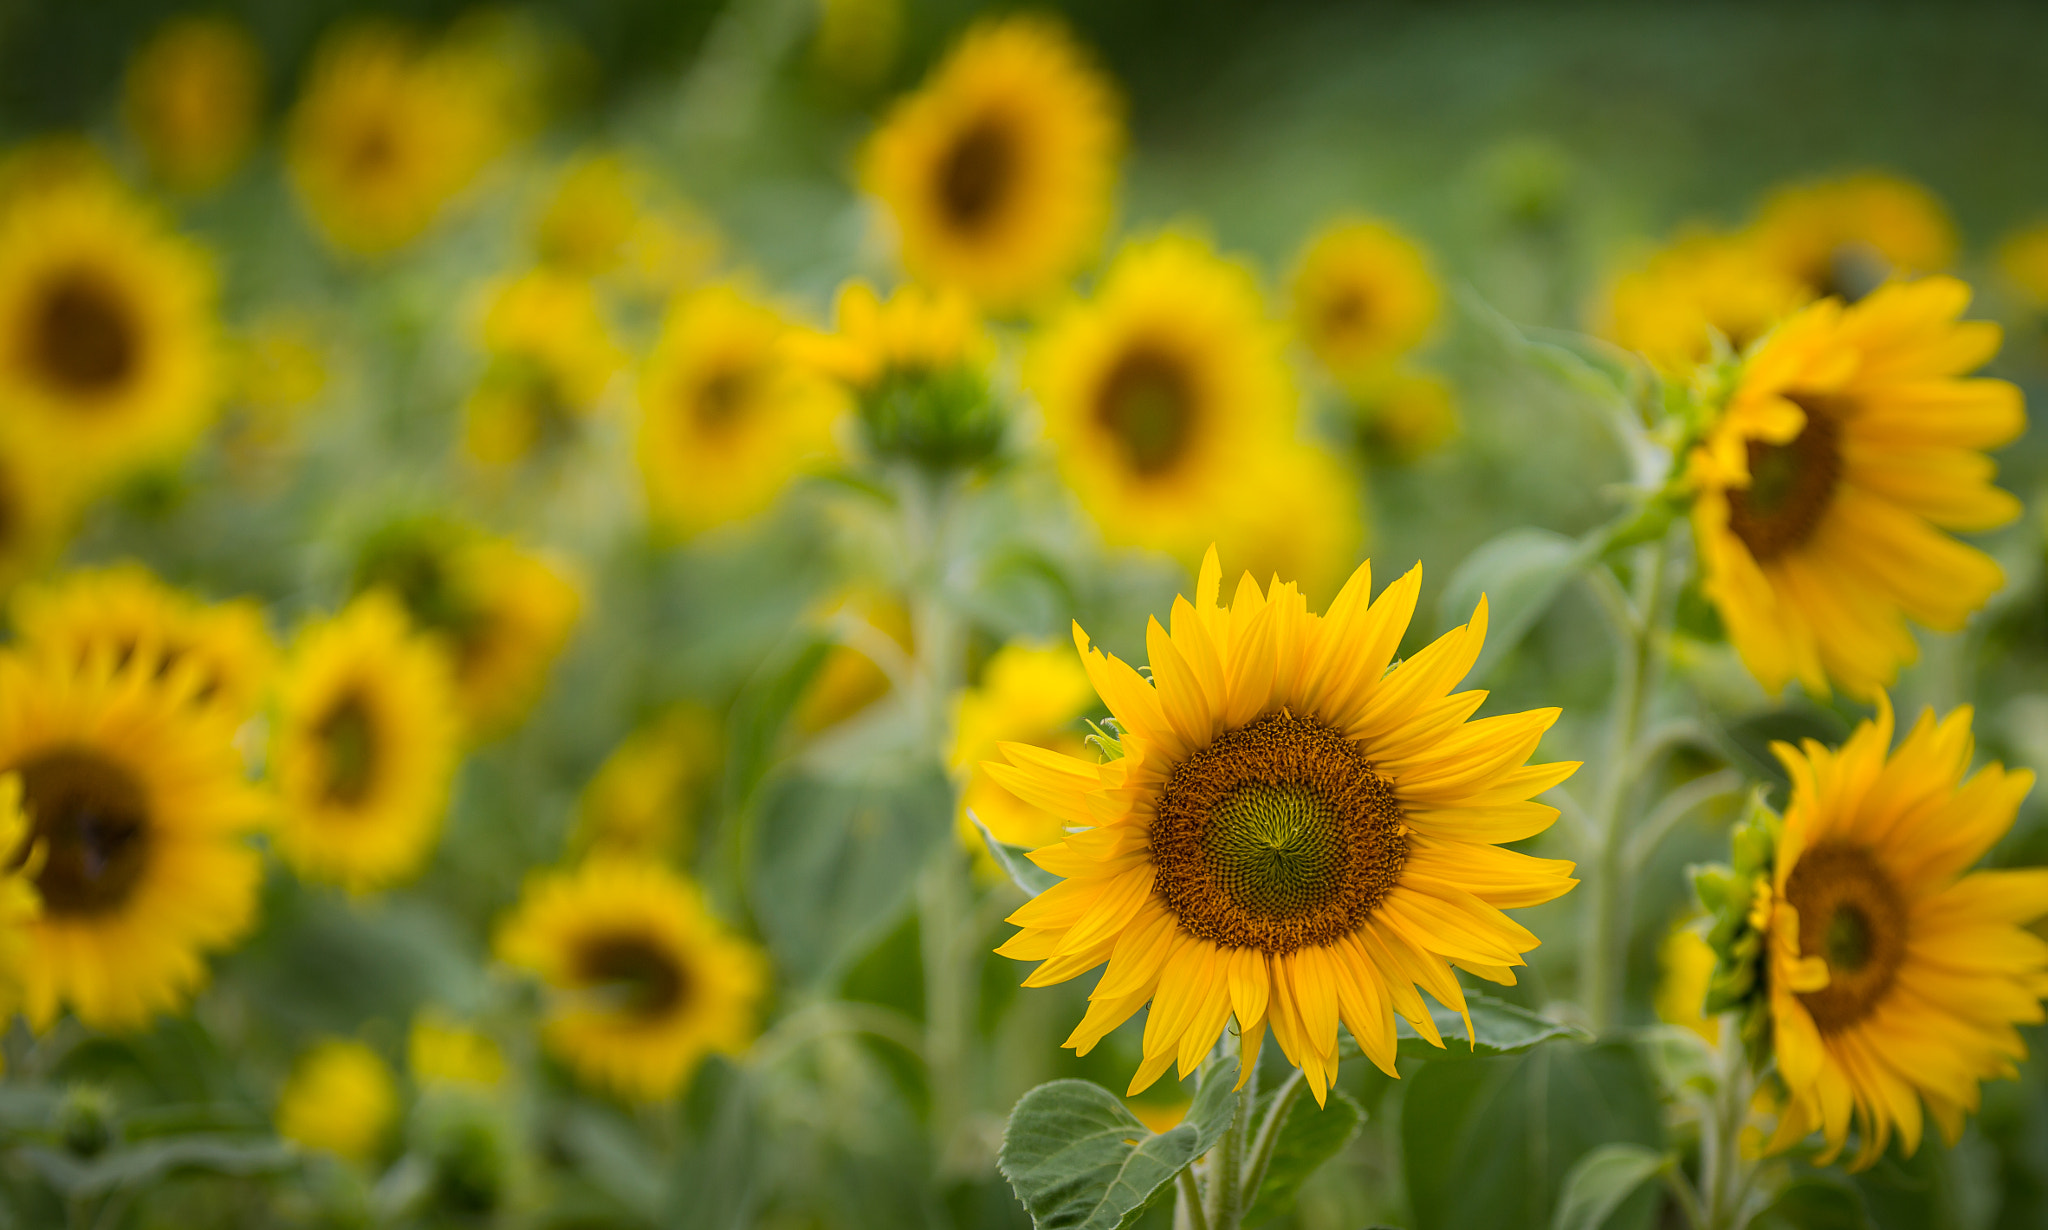 Photograph Sunflowers by Eva Lechner on 500px